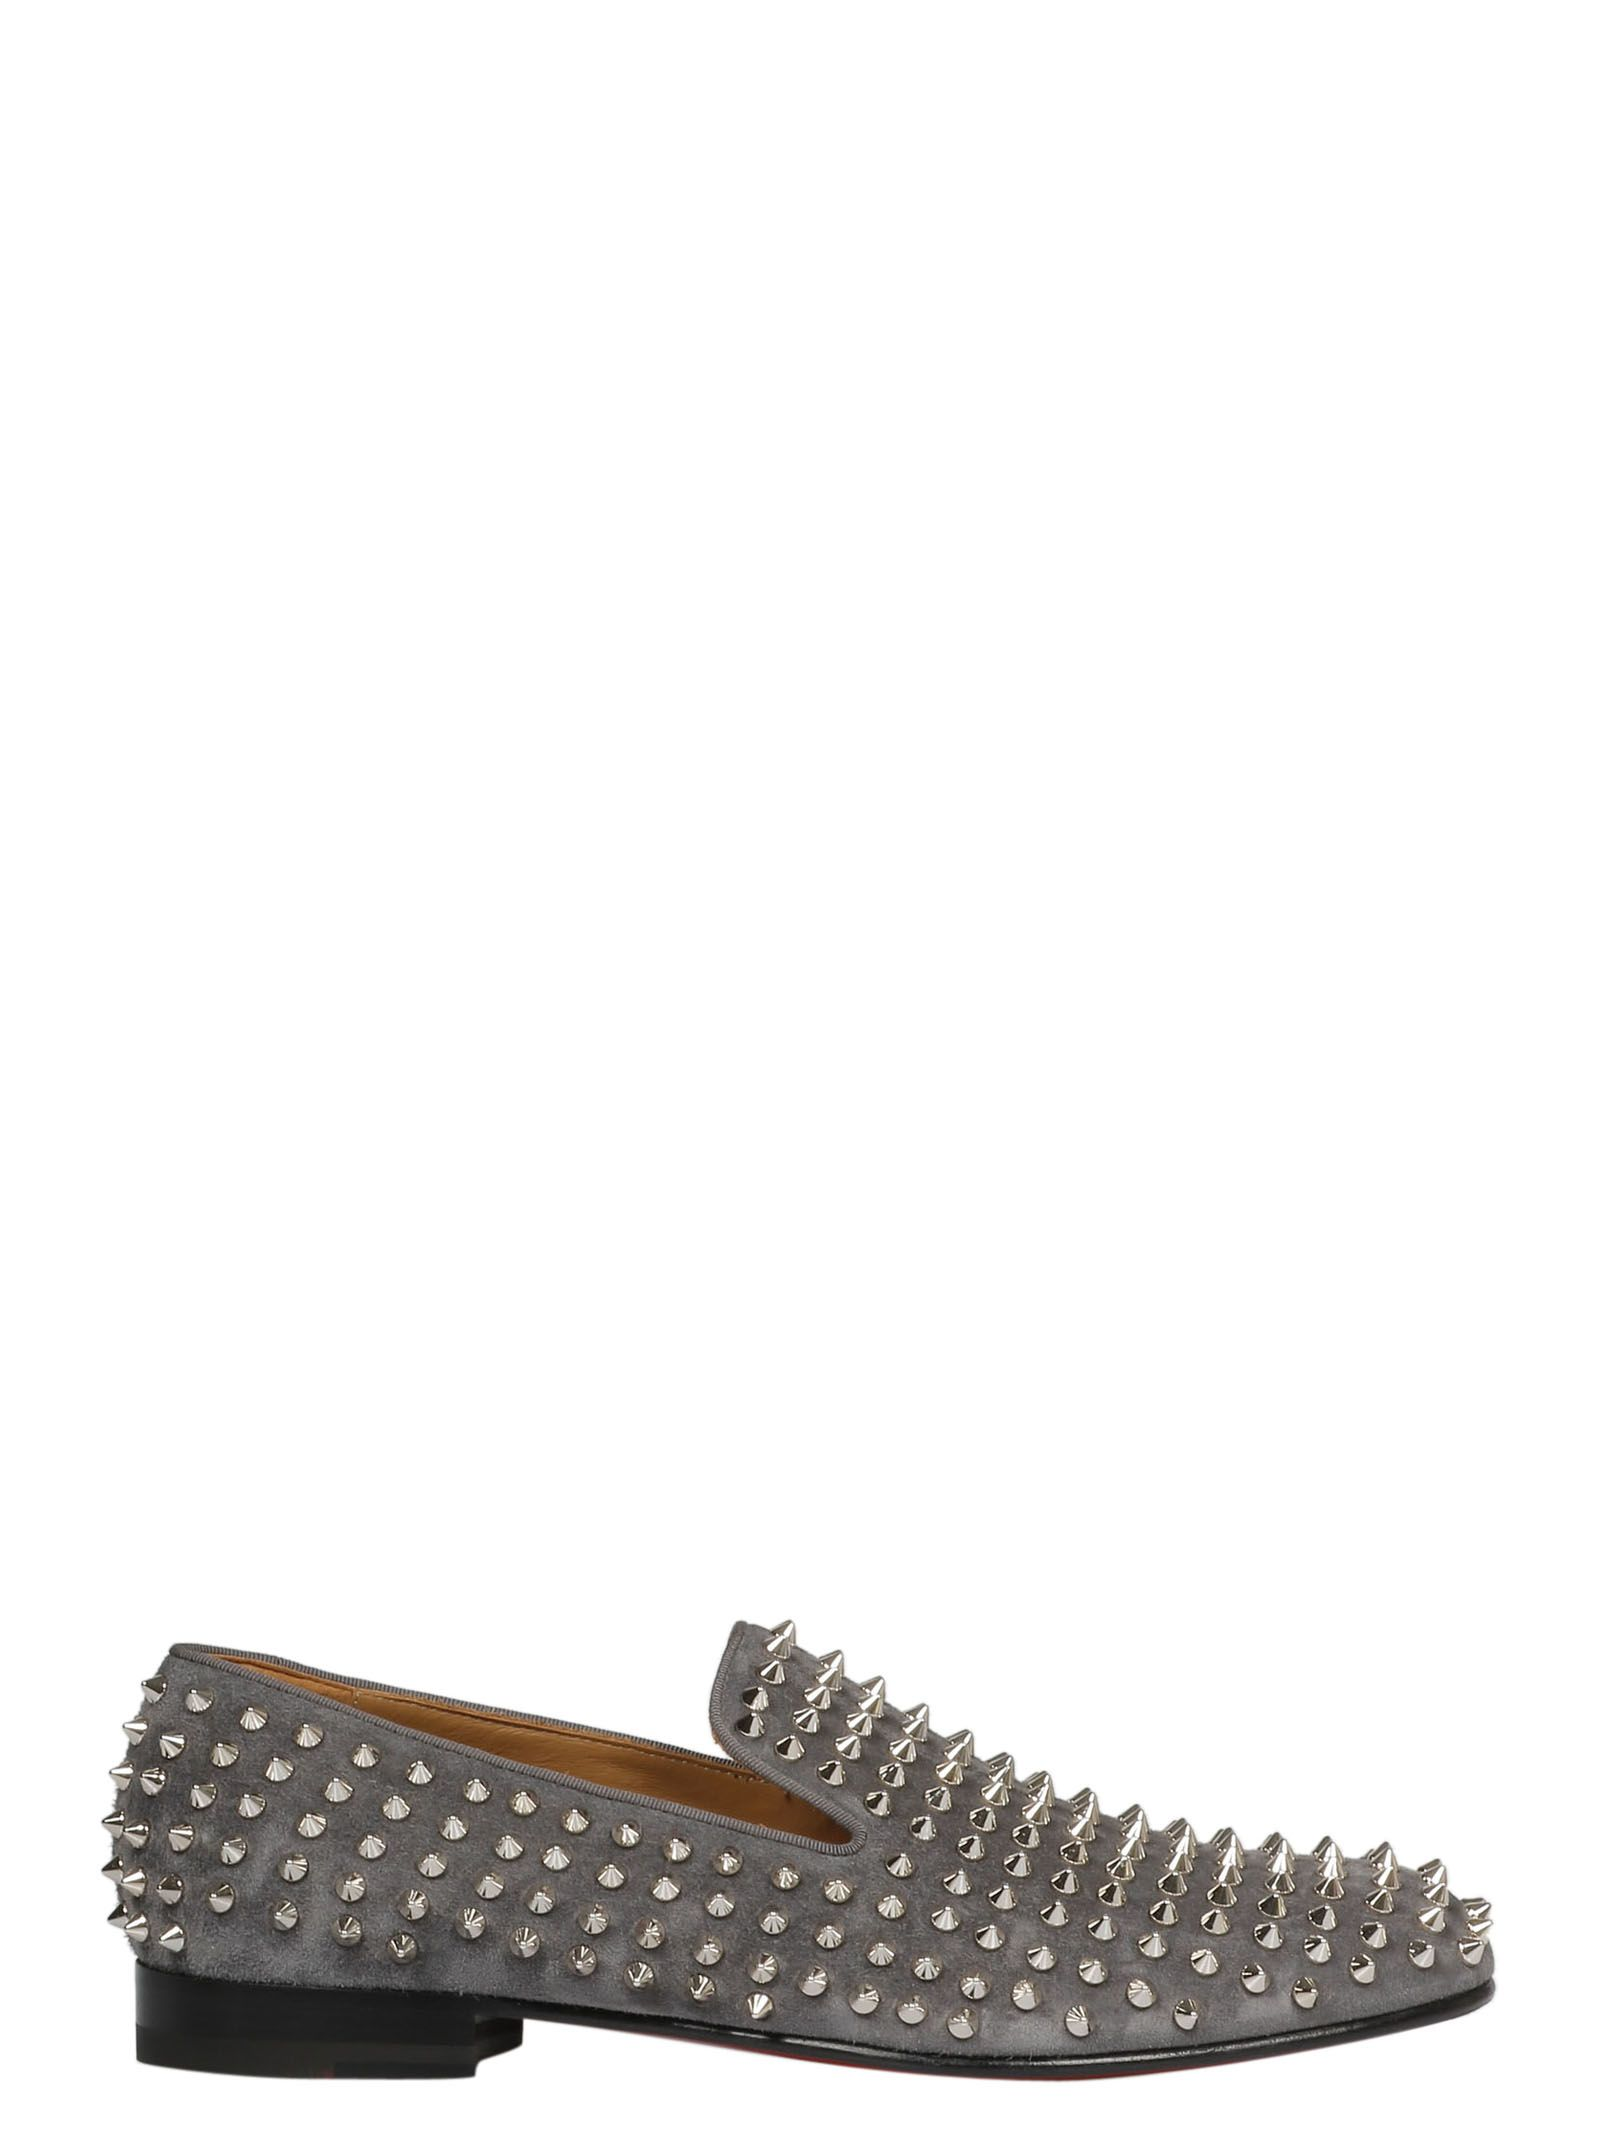 Christian Louboutin Rollerboy Spikes Loafers